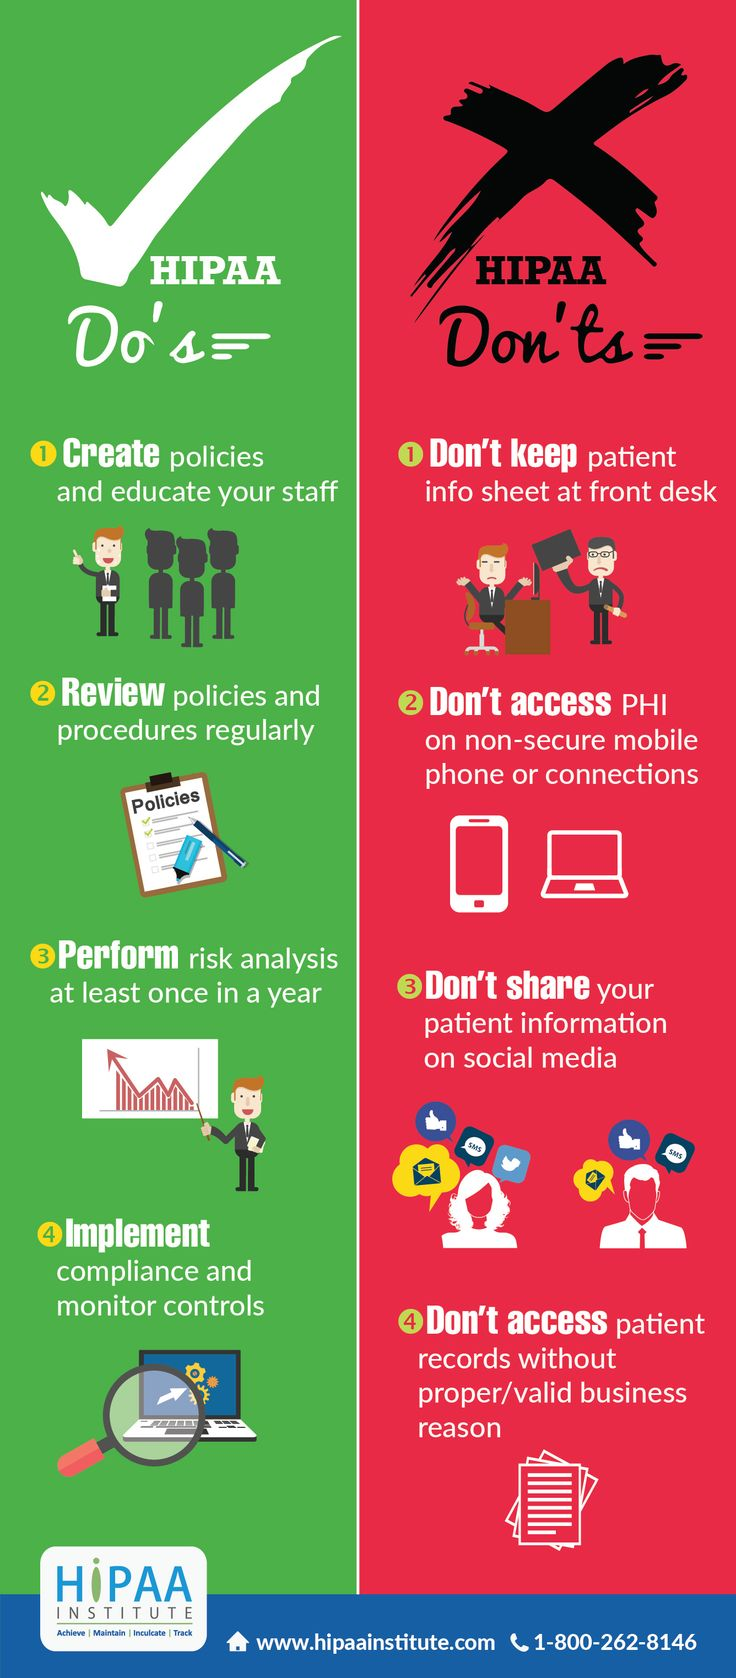 Here are the Do's & Don'ts of HIPAA Compliance from the HIPAA Institute.